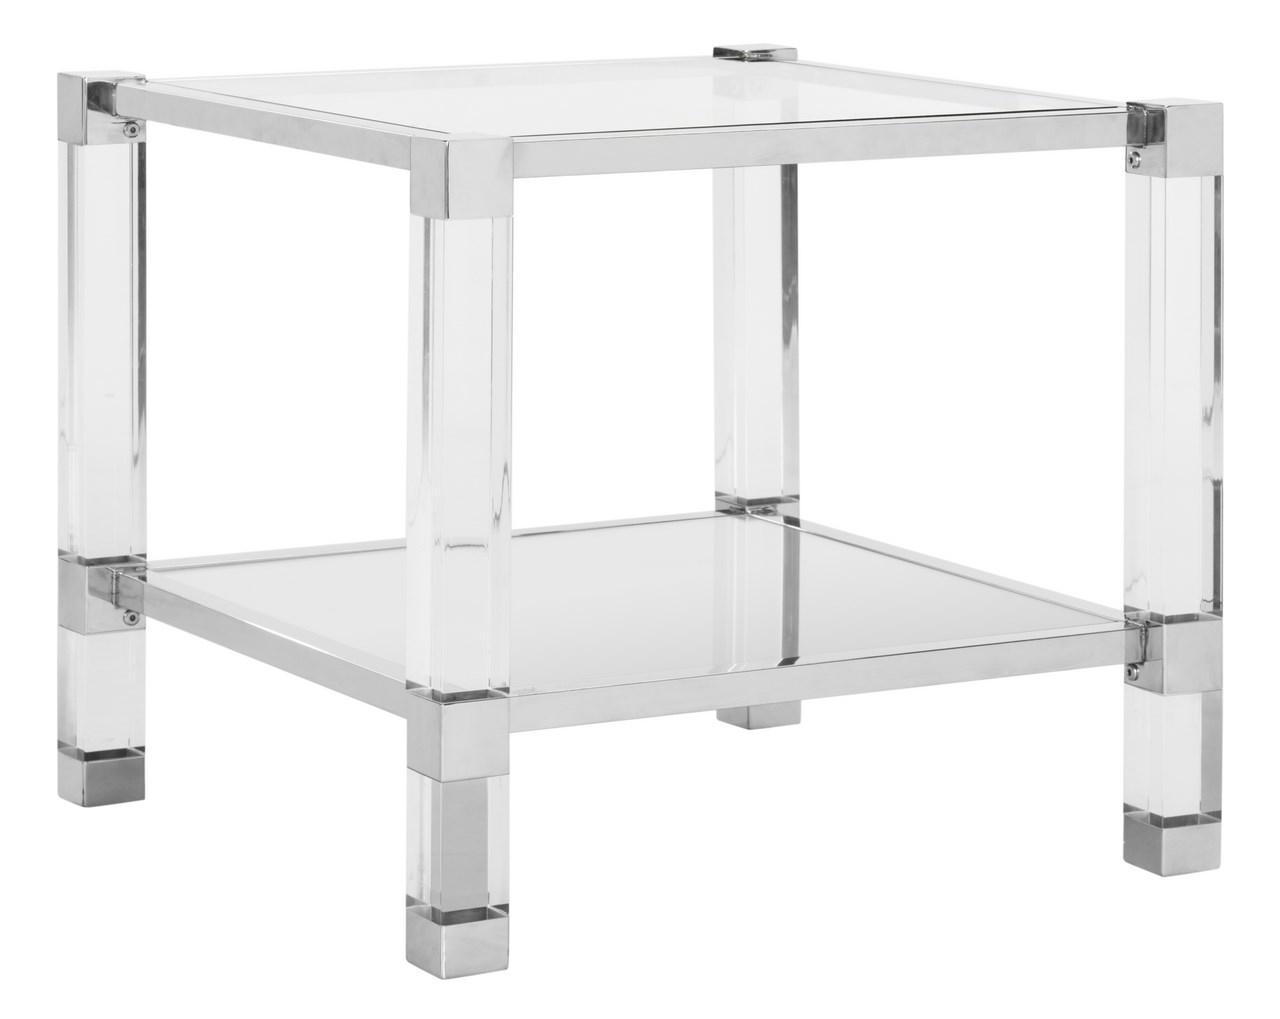 Inspired By The First Reigning Runway Divas, The Angie End Table Brings  Style, Substance, And Character To Any Room. Chrome, Glass And Acrylic  Details ...